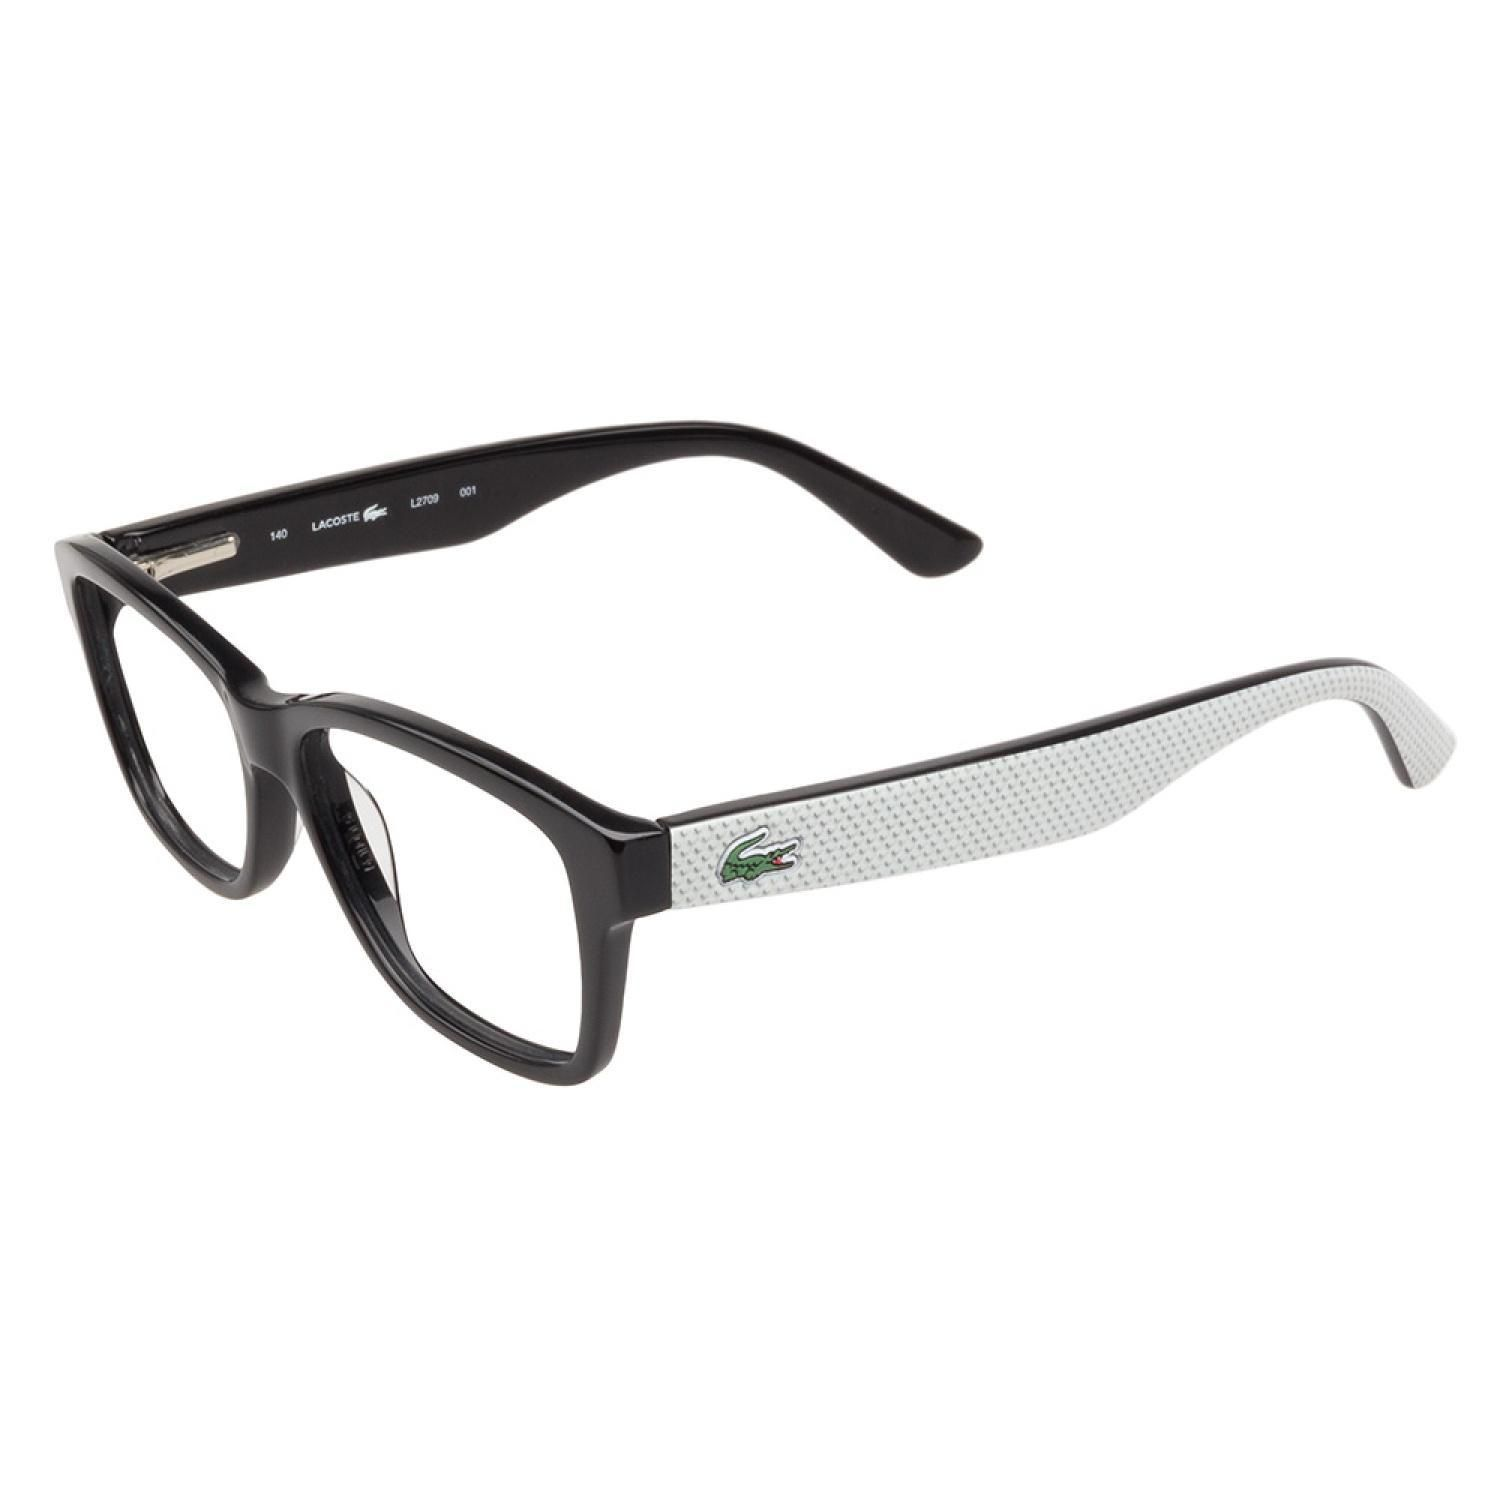 51380df7b6f Lacoste L2709 001 Black Prescription Eyeglasses